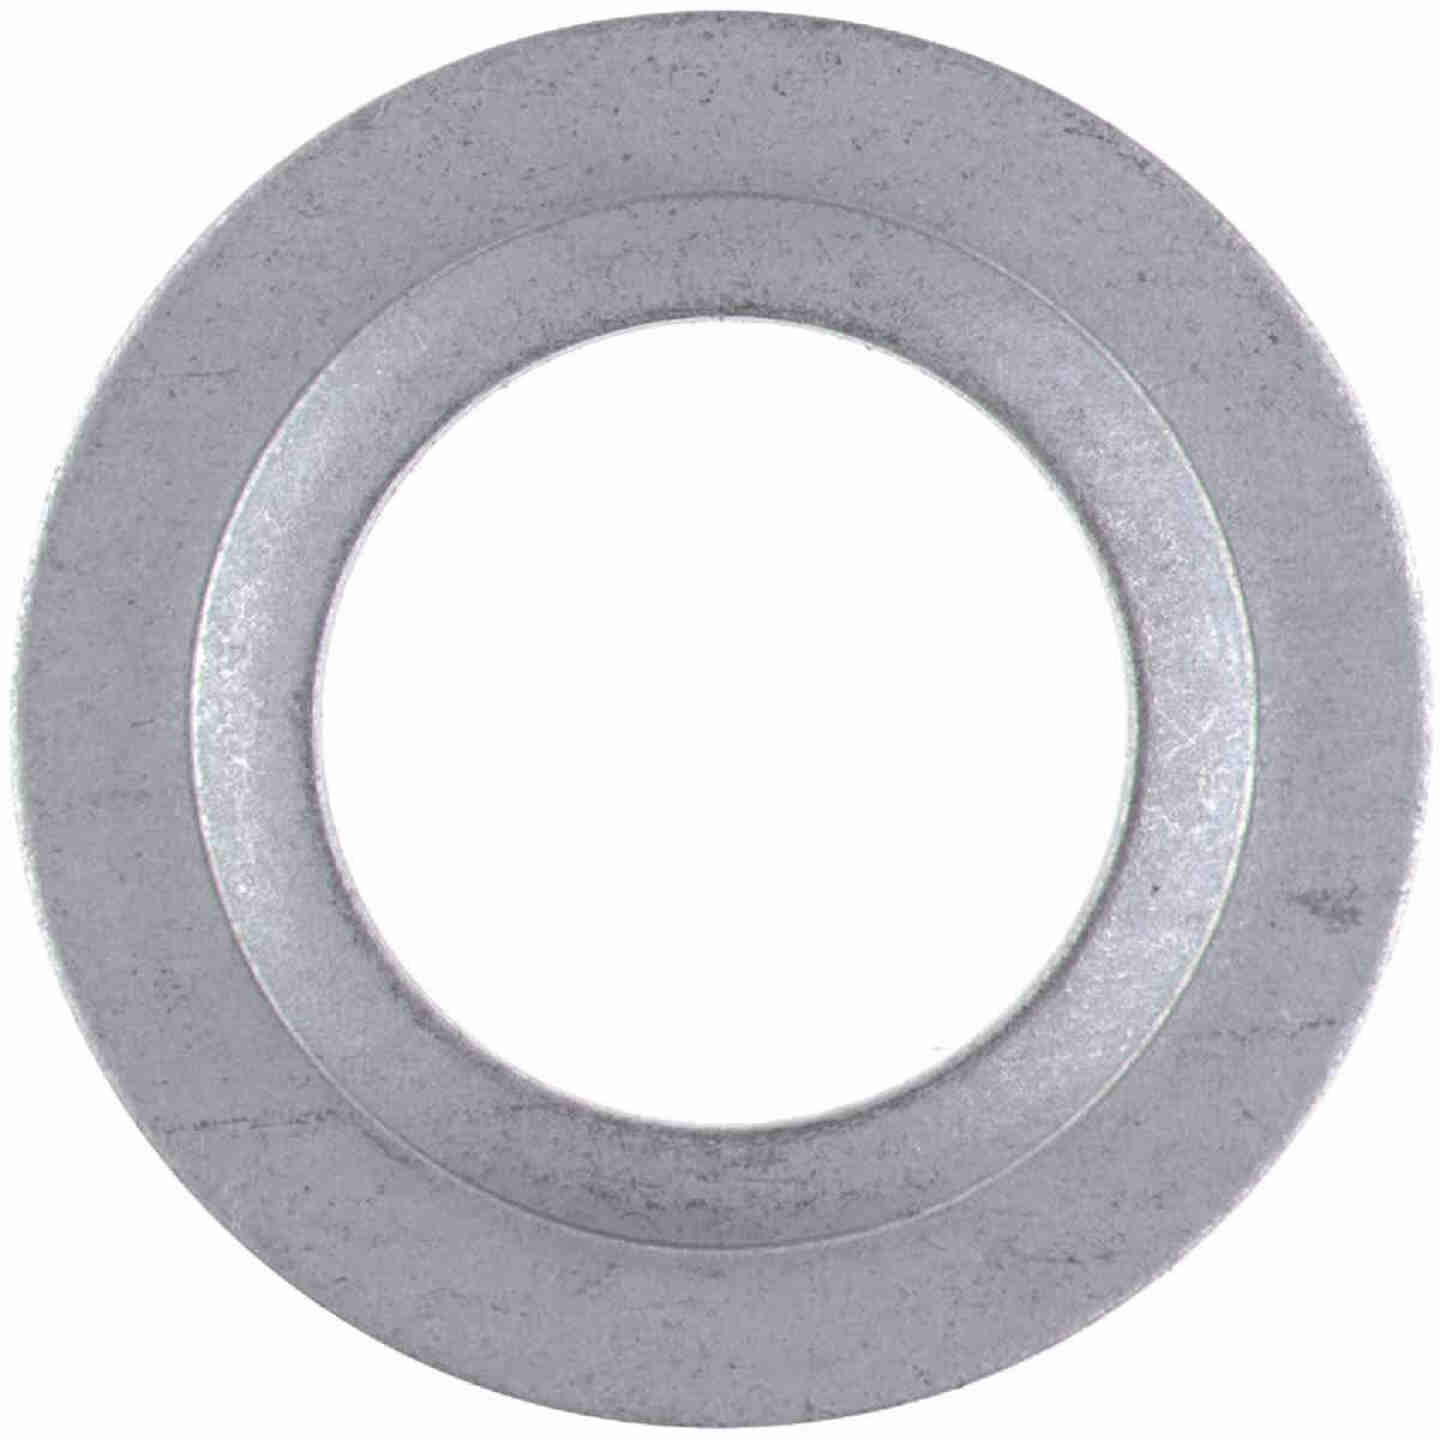 Halex 3/4 In. to 1/2 In. Plated Steel Rigid Reducing Washer (4-Pack) Image 1